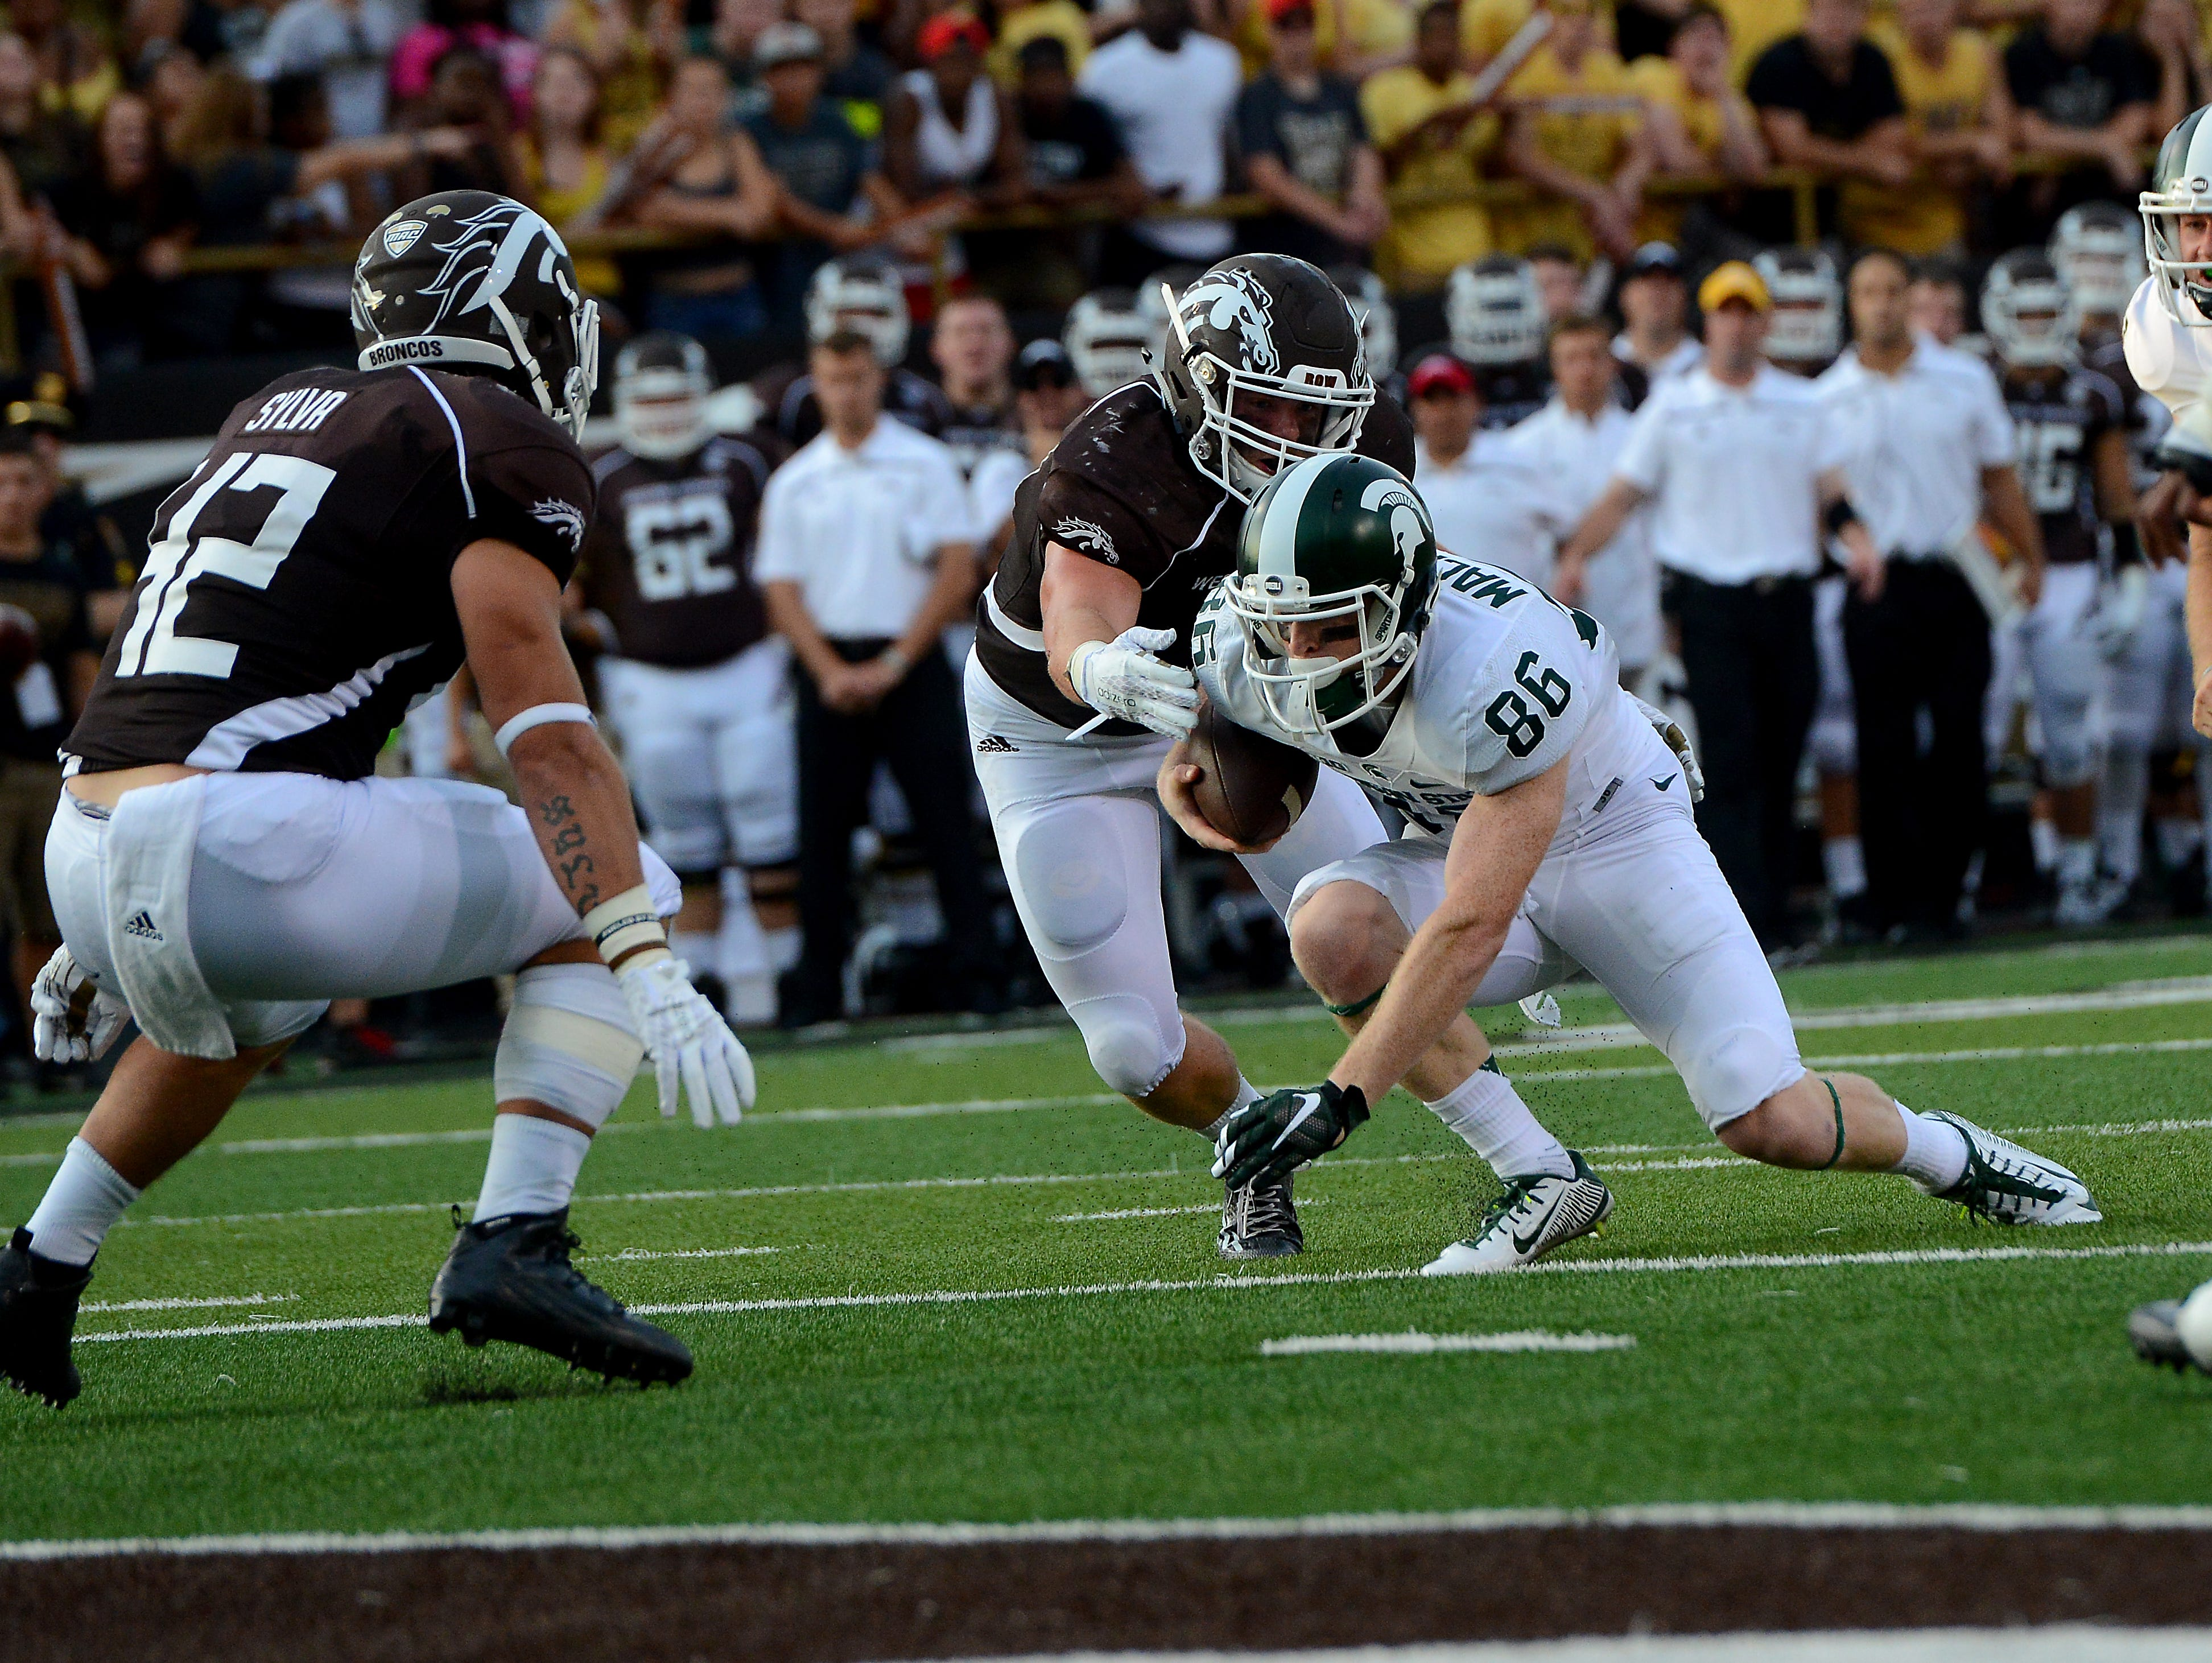 Matt Macksood looks for room to run on a fake extra point attempt against Western Michigan in last year's season opener. Macksood, a Lansing Catholic alum, is MSU's holder and also plays on MSU's punt block team. He's hoping to see time at receiver this fall.